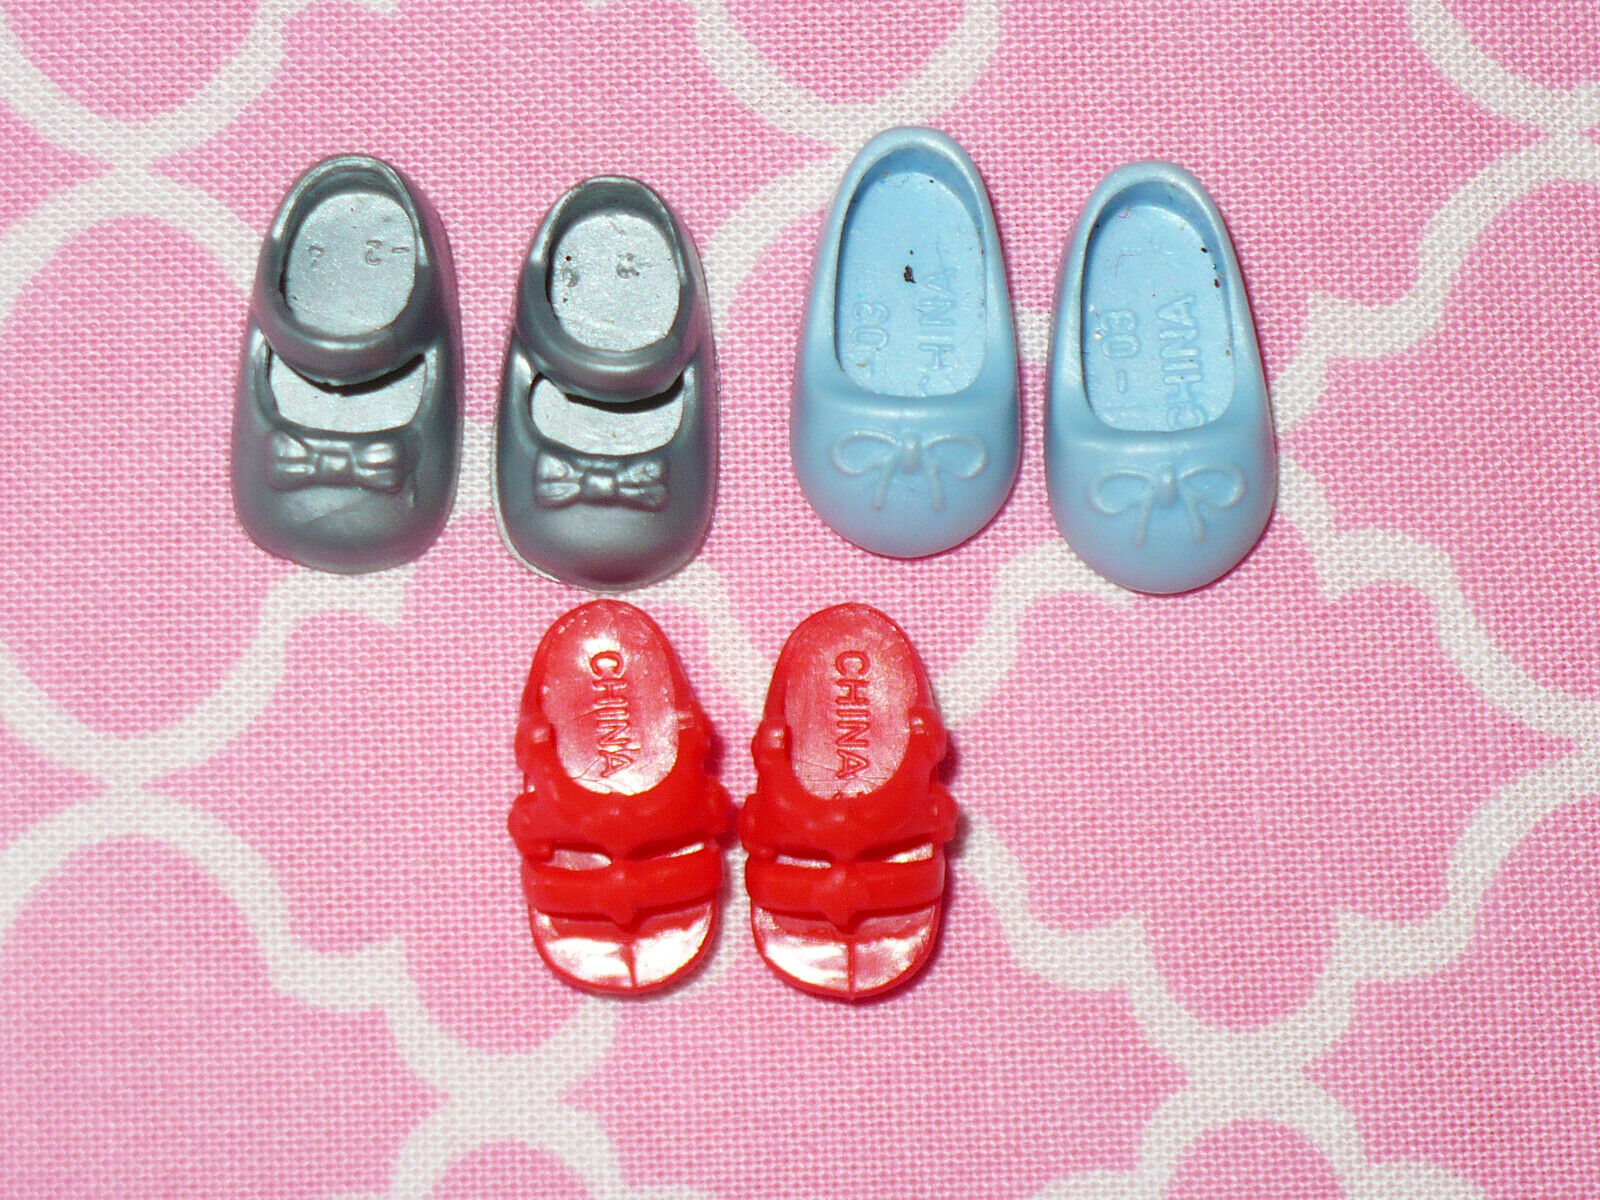 Mattel Barbie KELLY DOLL Vintage Shoes SRESS SHOES RED SANDALS Lot Of 3 Pairs - $19.99